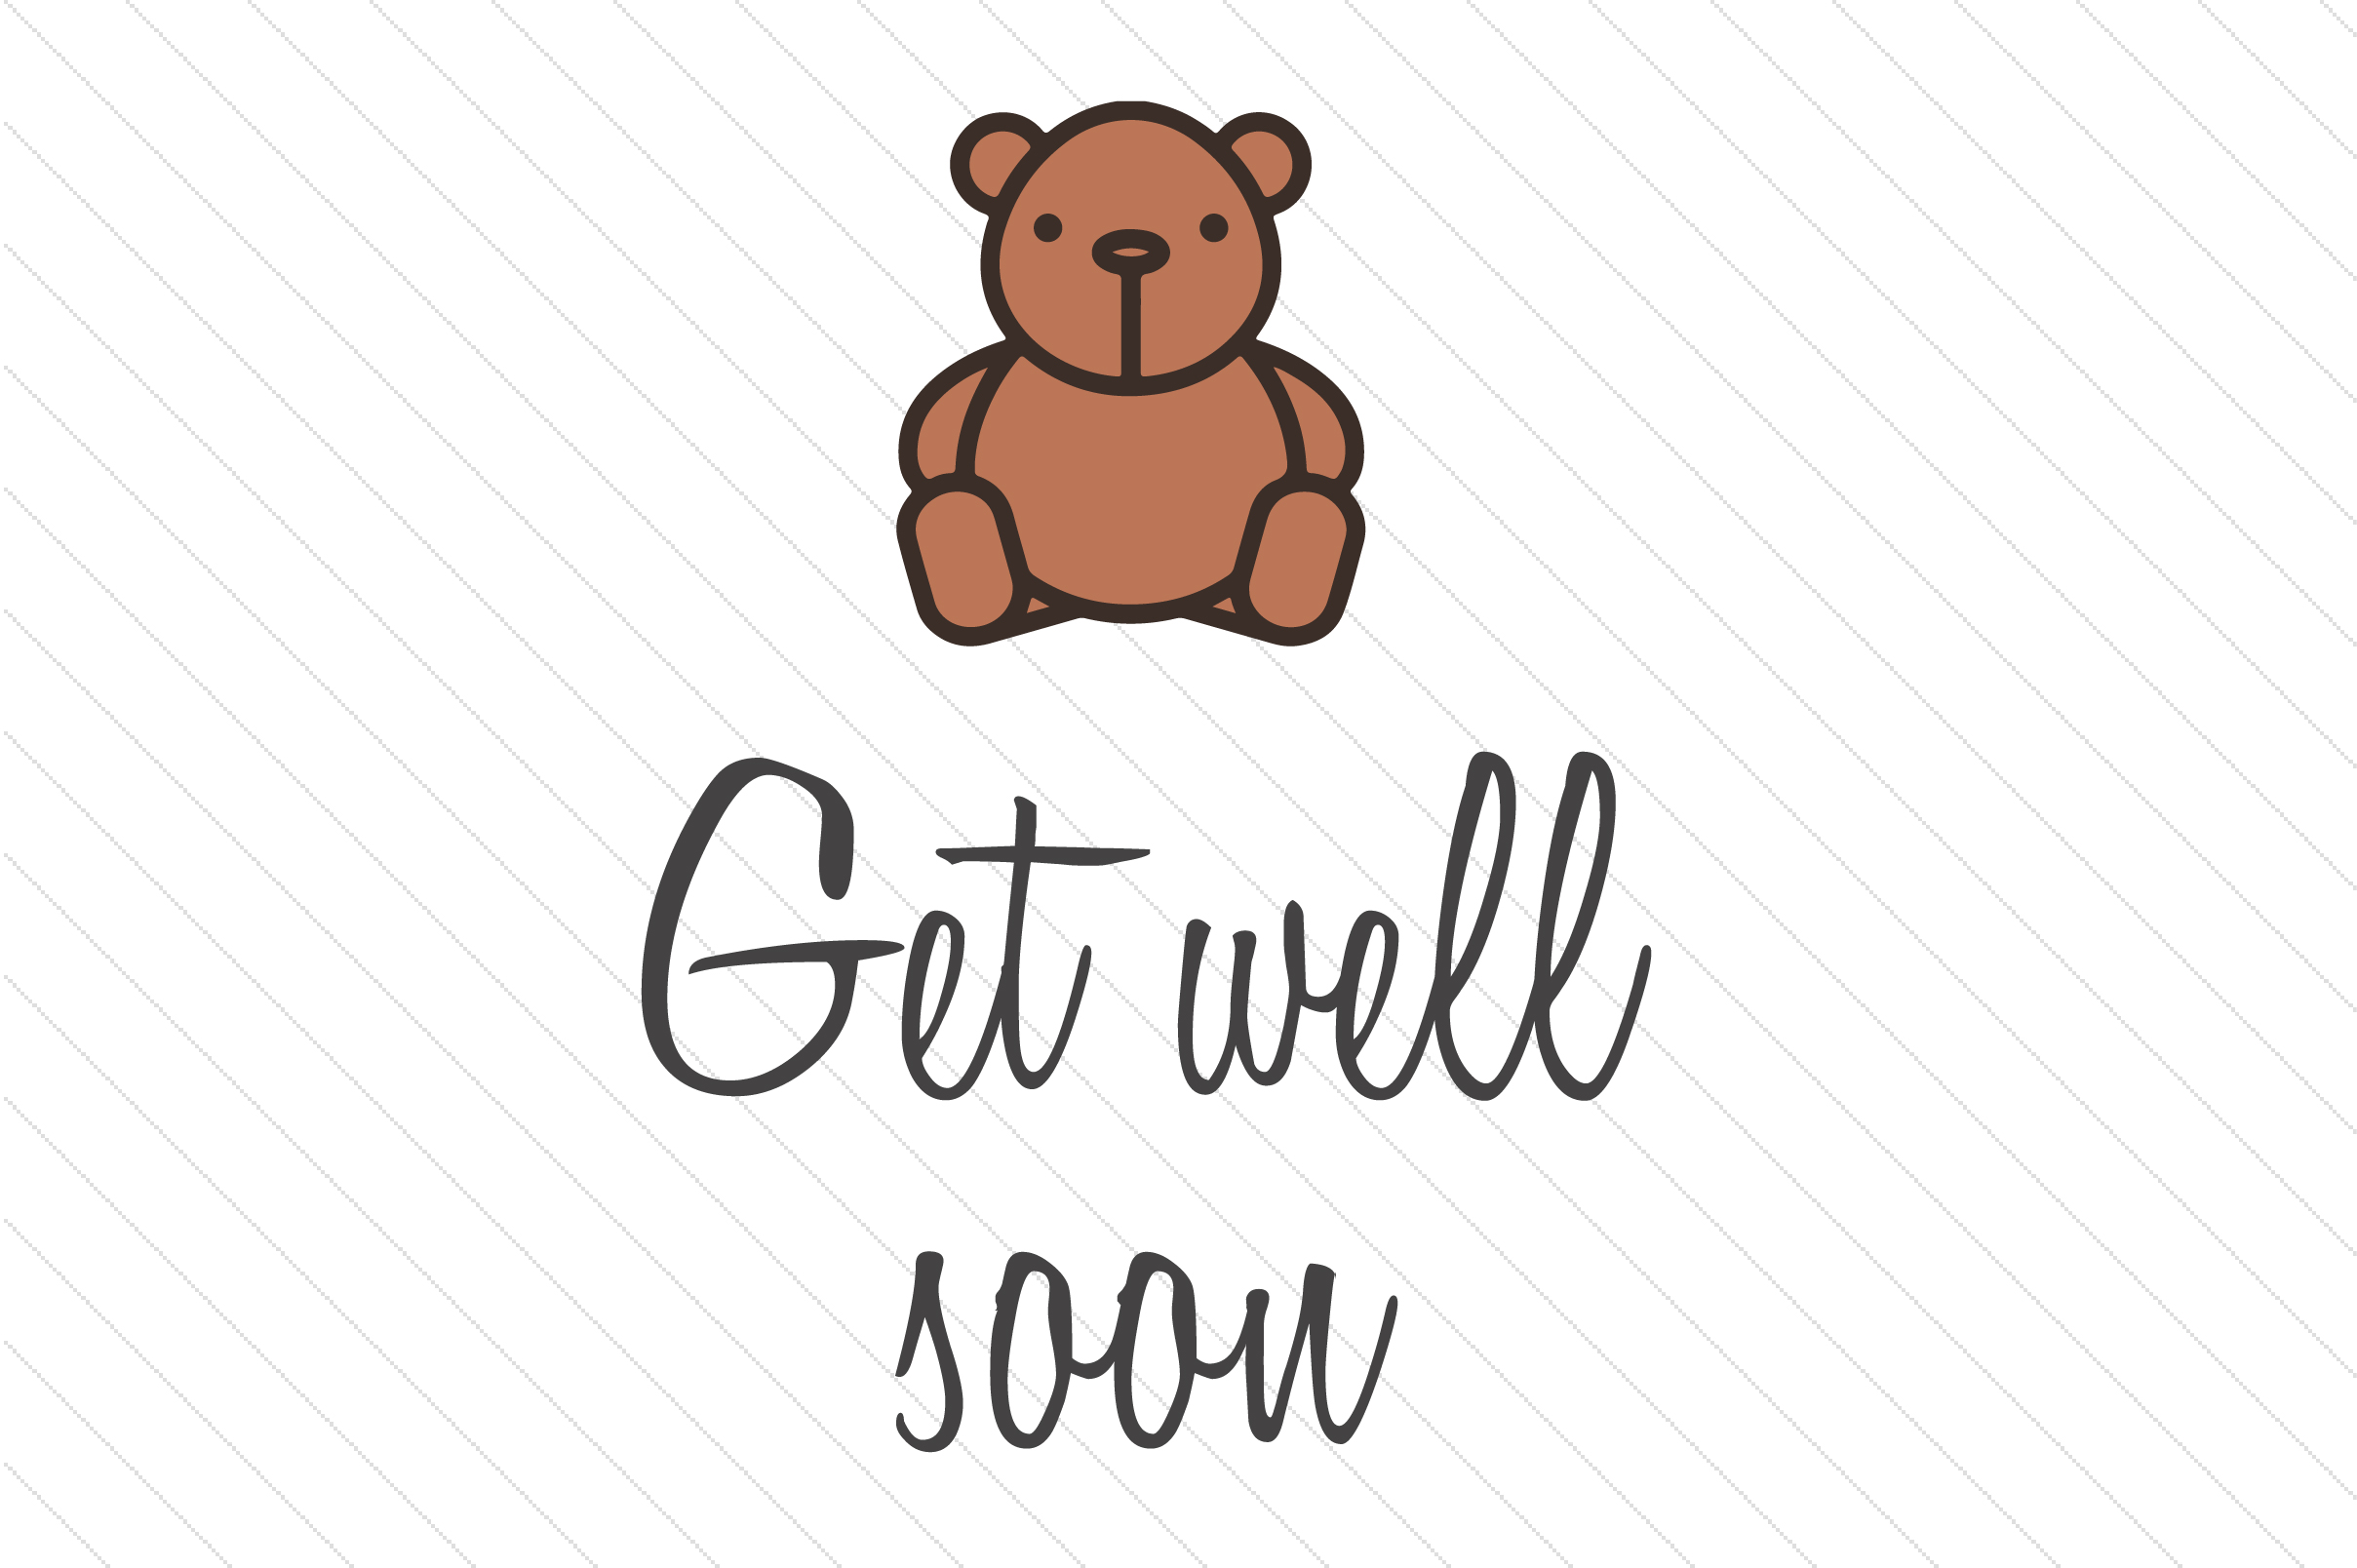 Get Well Soon Teddy Bear Quotes Craft Cut File By Creative Fabrica Crafts